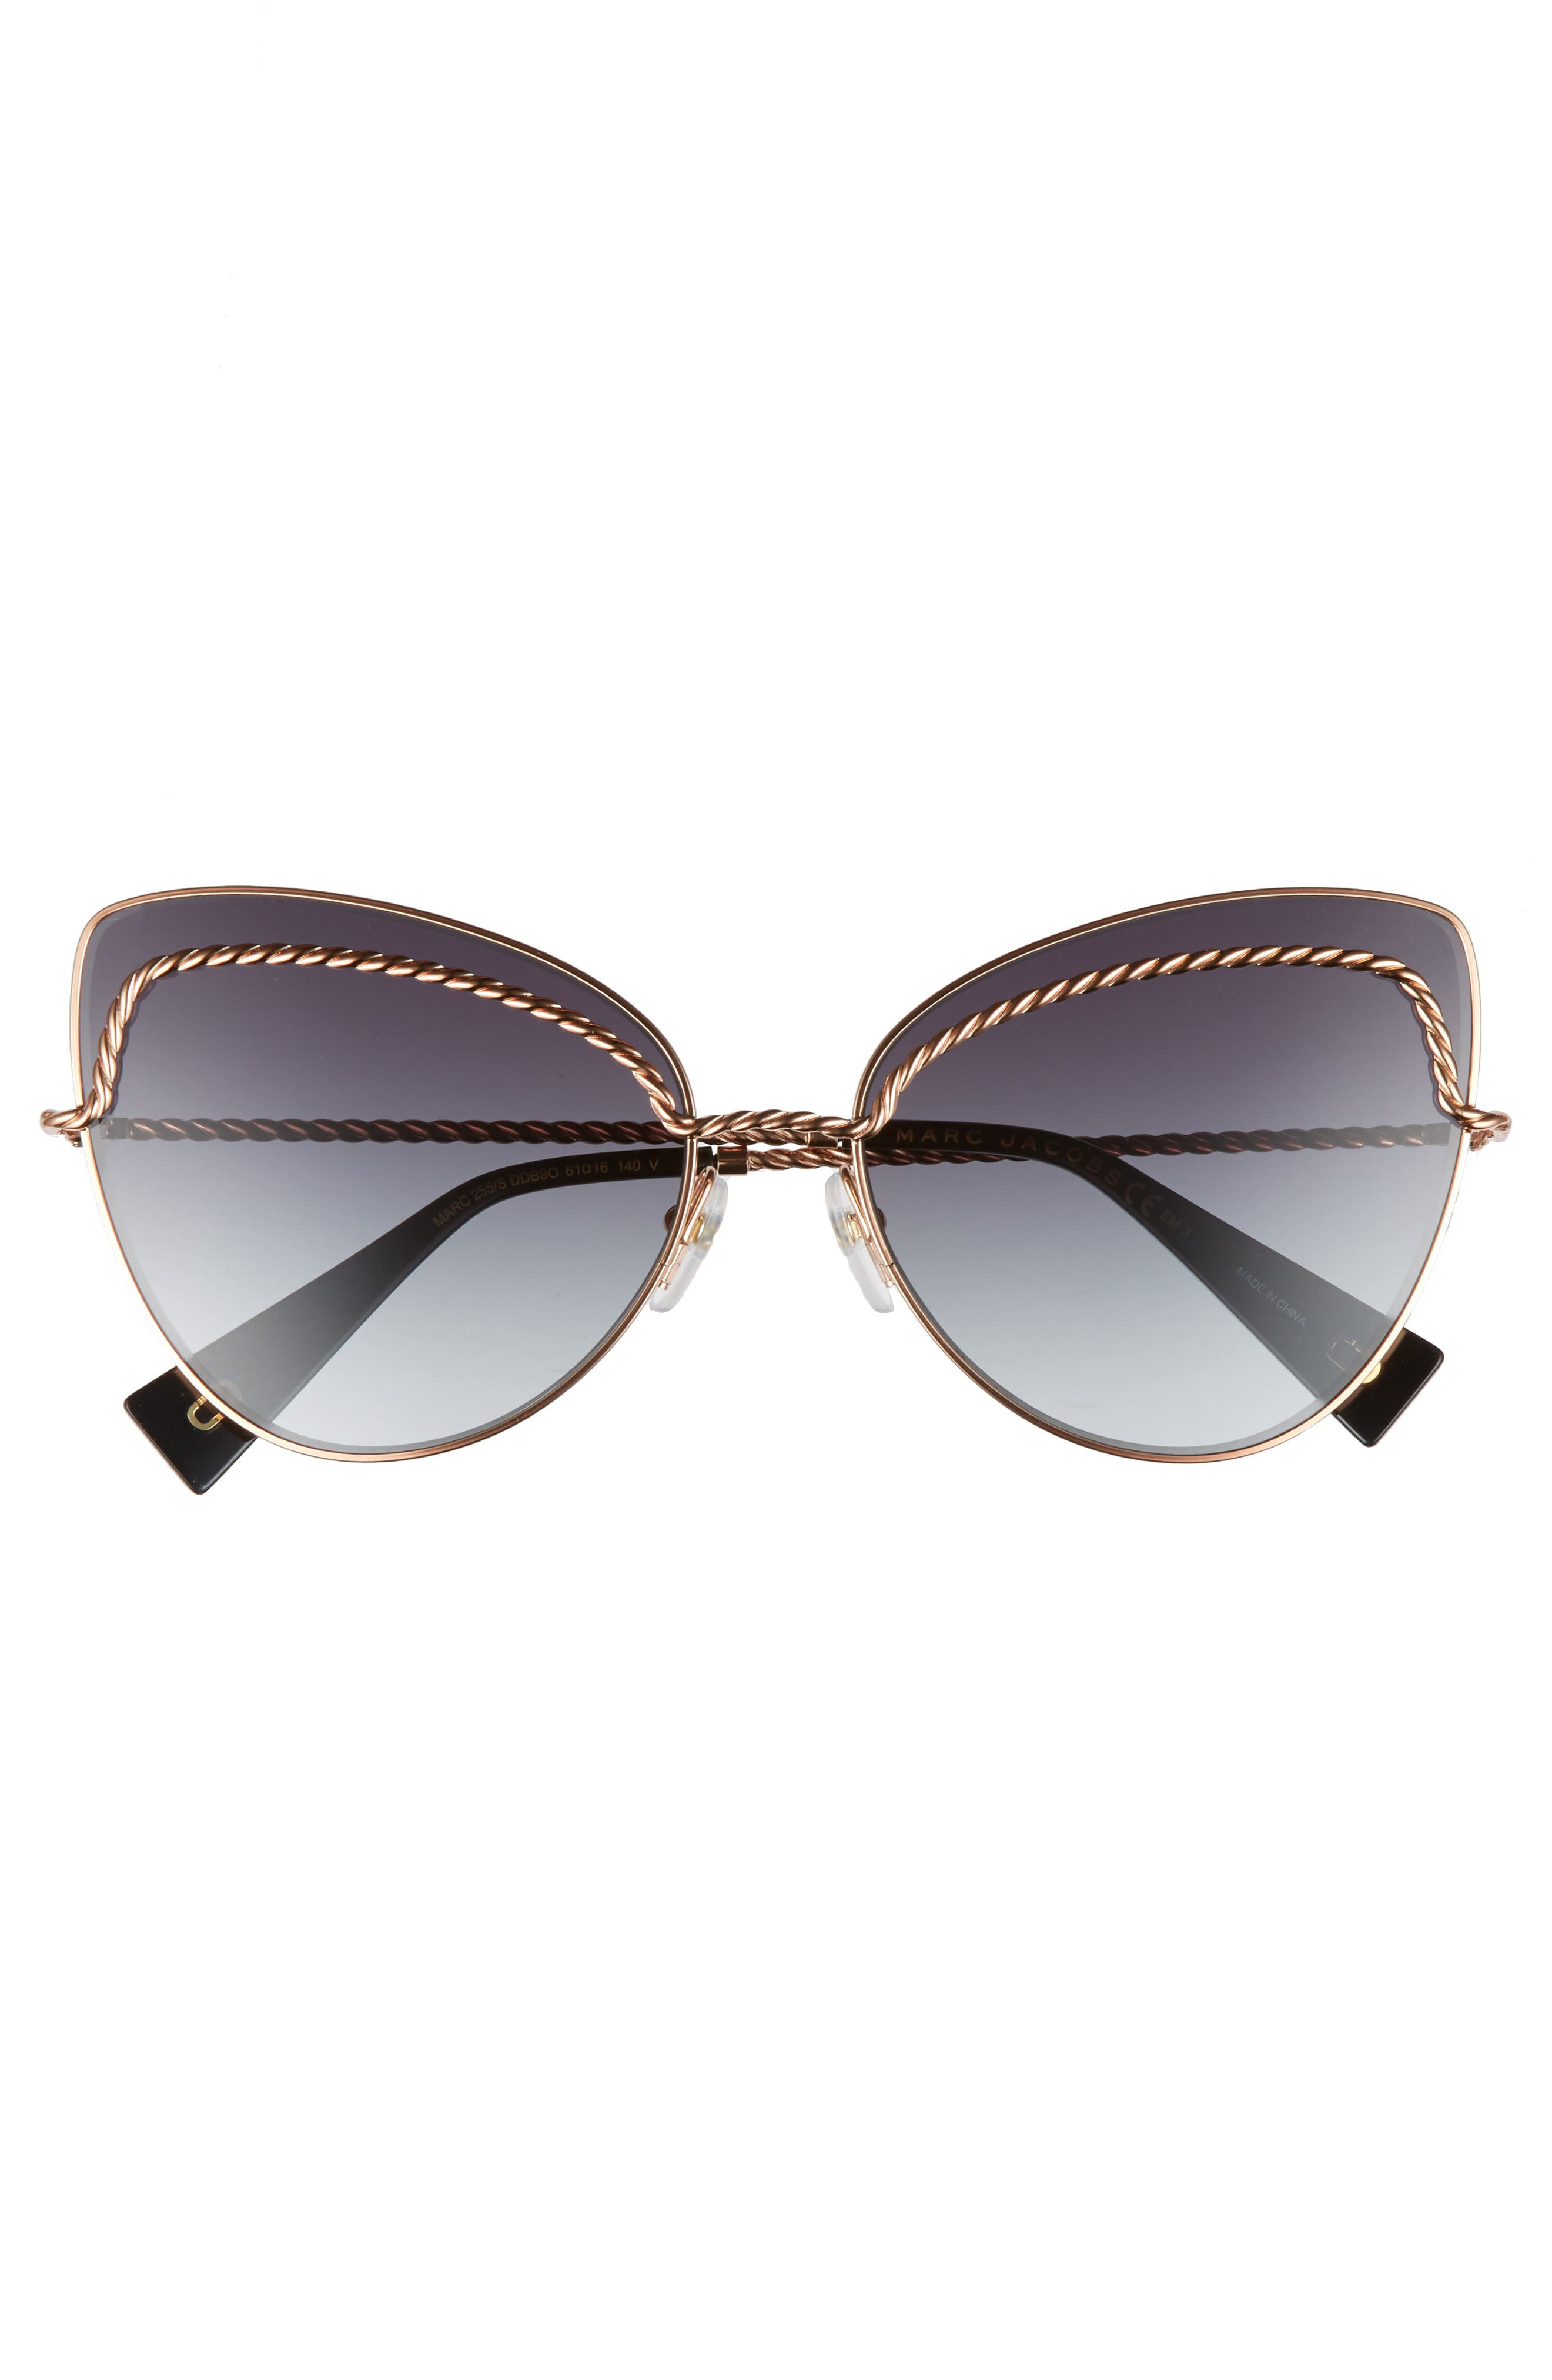 61mm Butterfly Sunglasses,                             Alternate thumbnail 5, color,